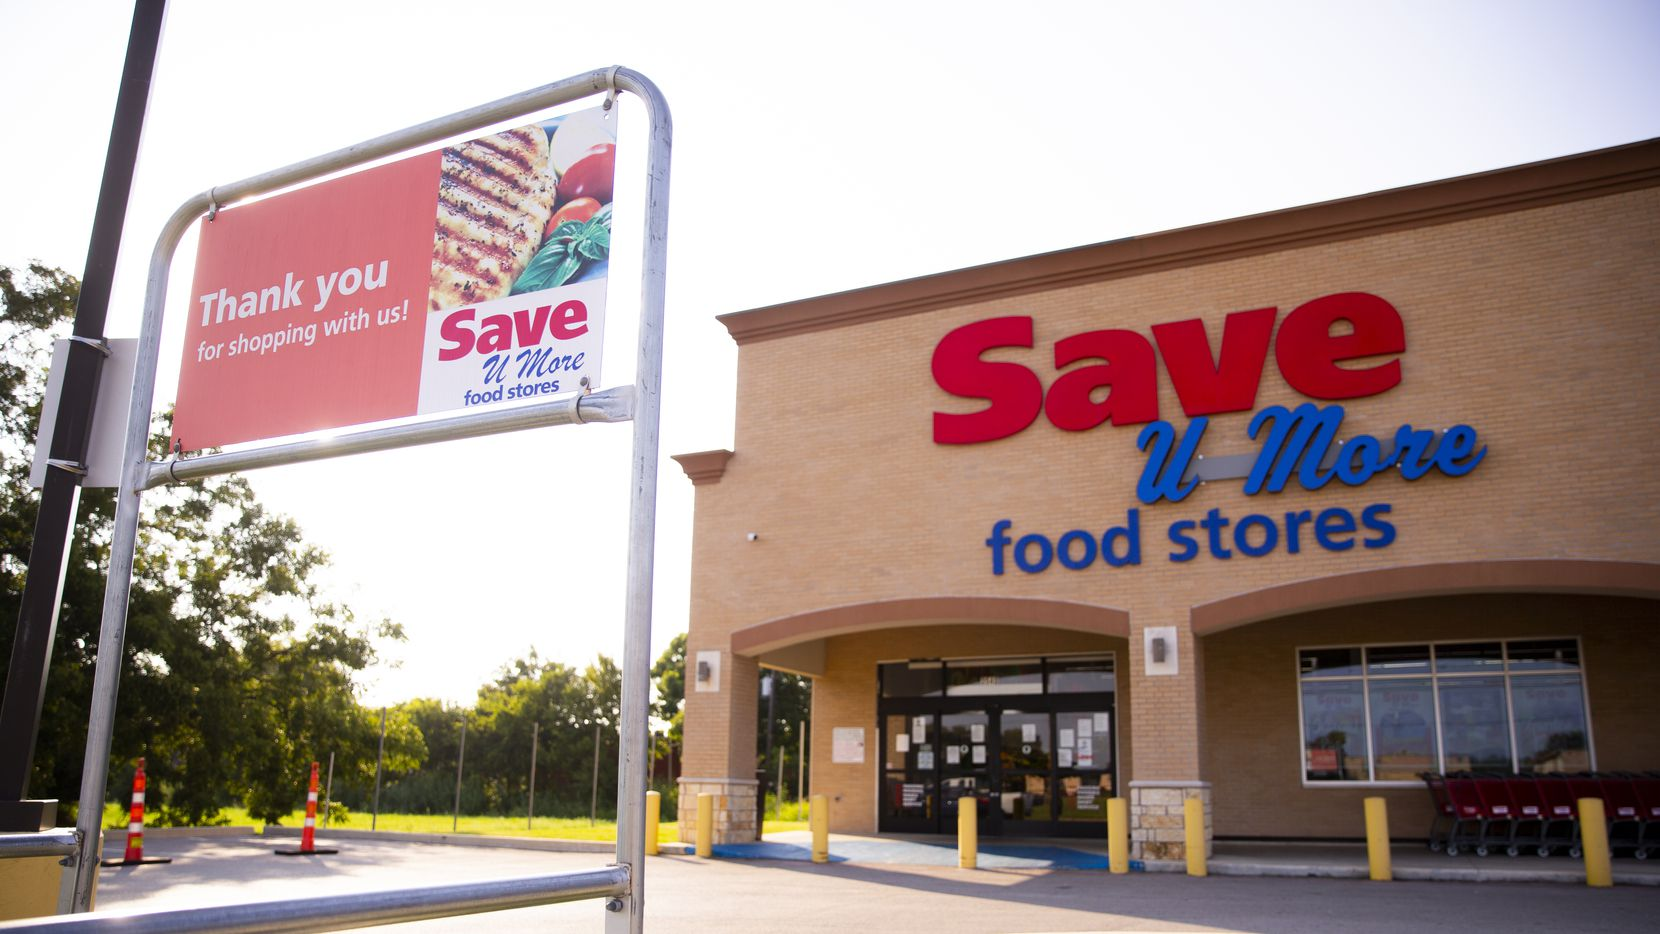 Exterior of the Save U More grocery store on Aug. 29, 2020 in South Dallas.